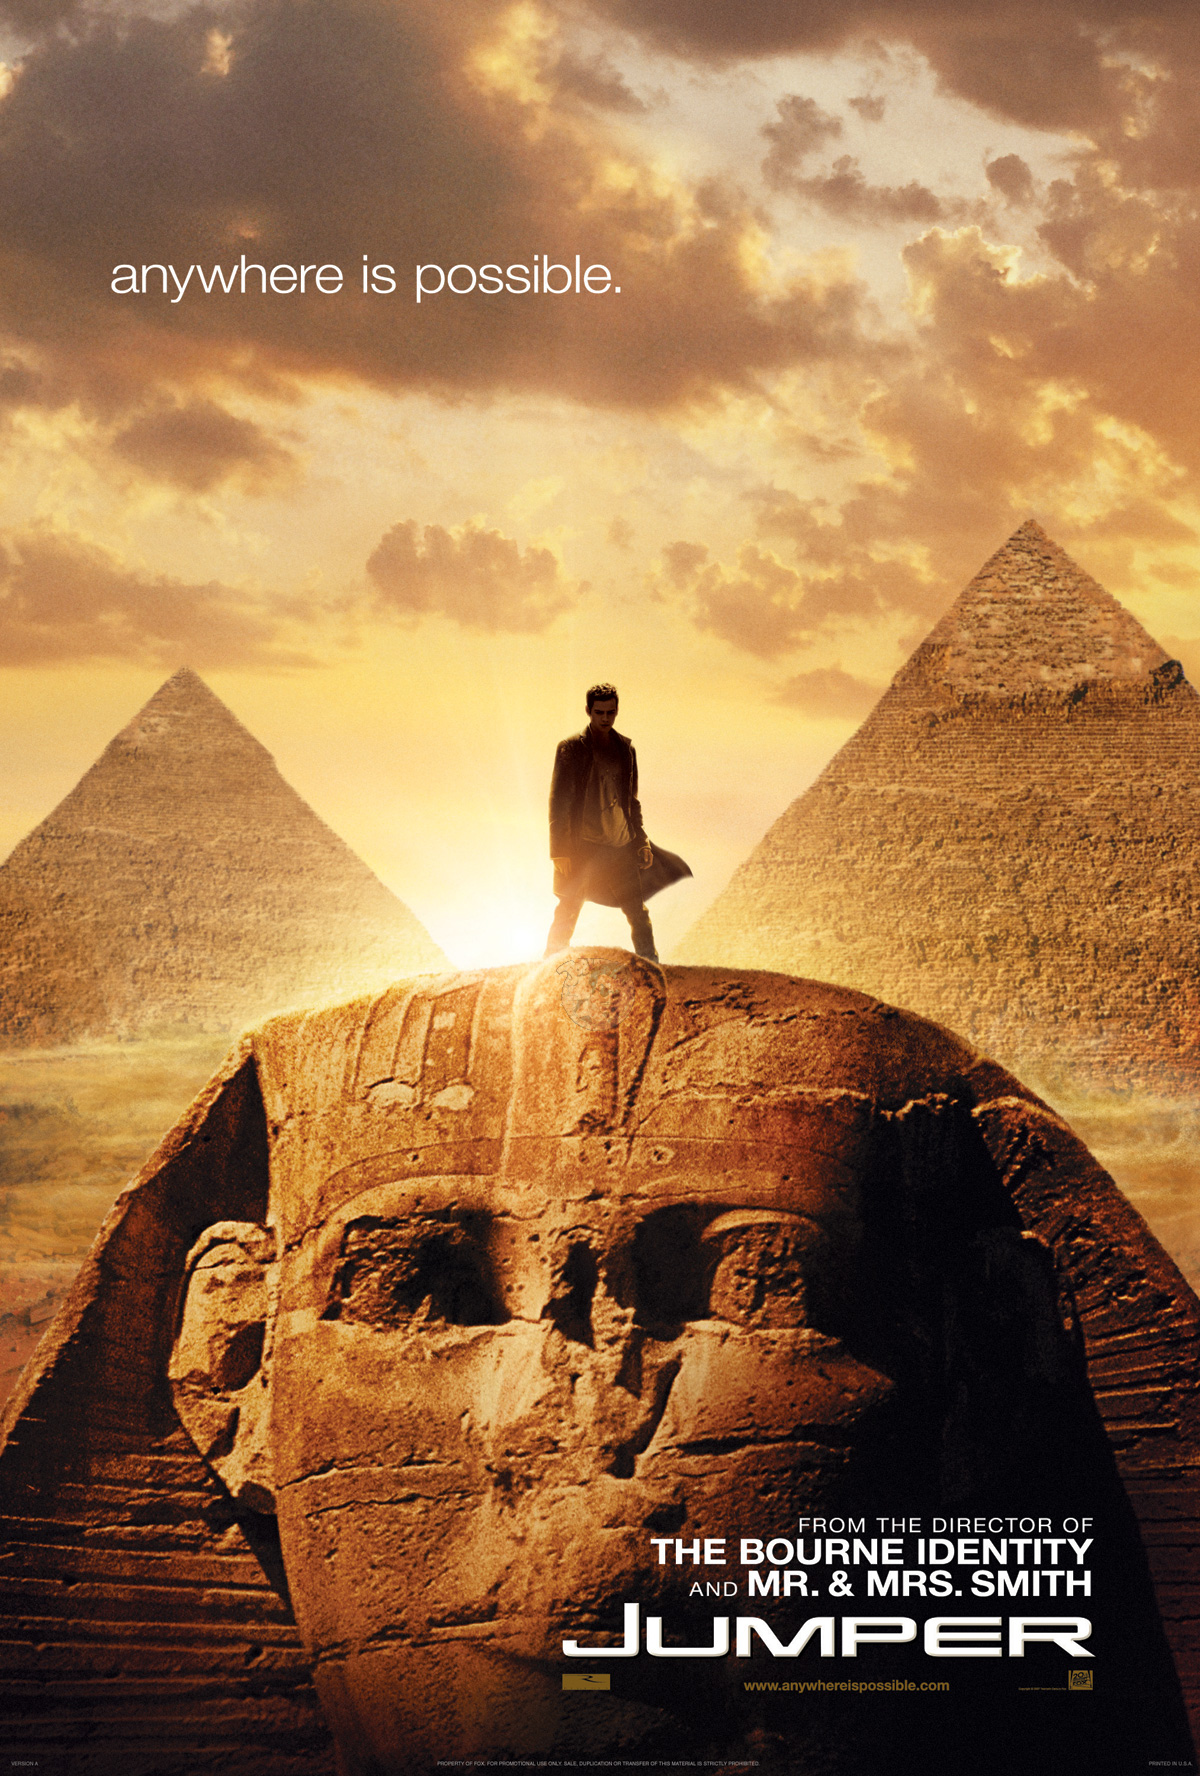 This movie sphinx!